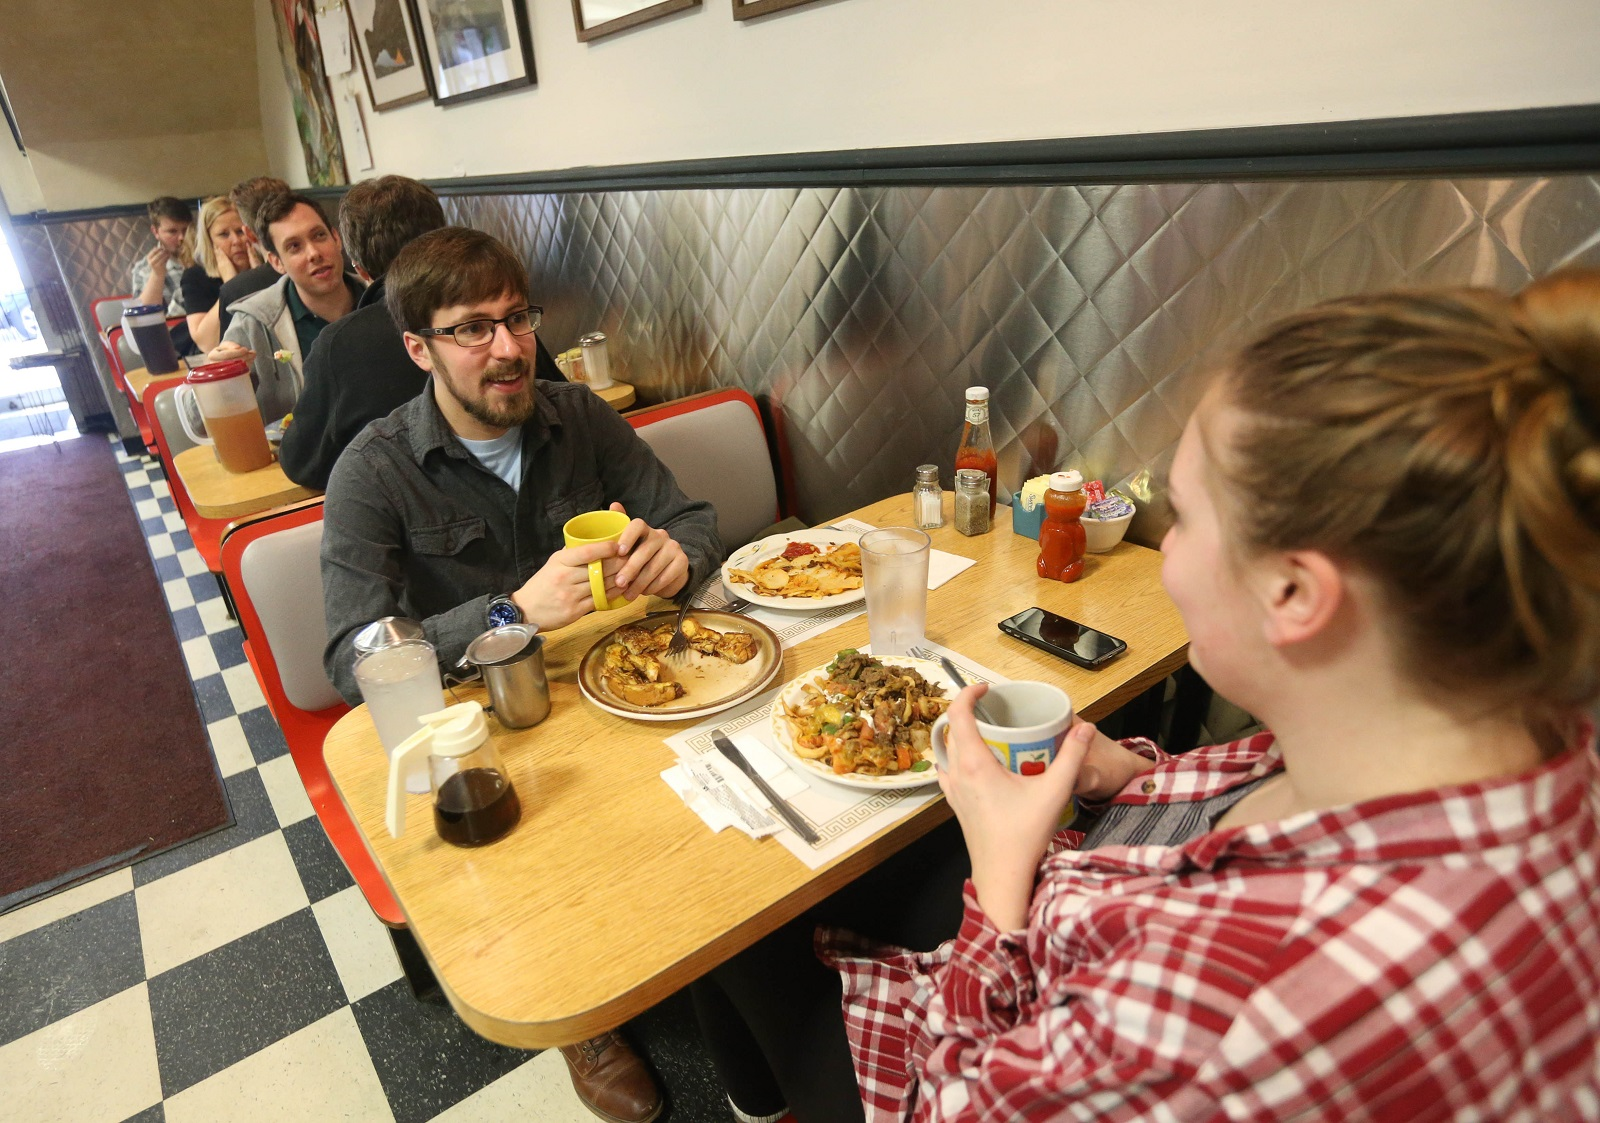 University at Buffalo students Justin Fields, left, and Amelia Veitch have lunch in Amy's Place. (Sharon Cantillon/Buffalo News)